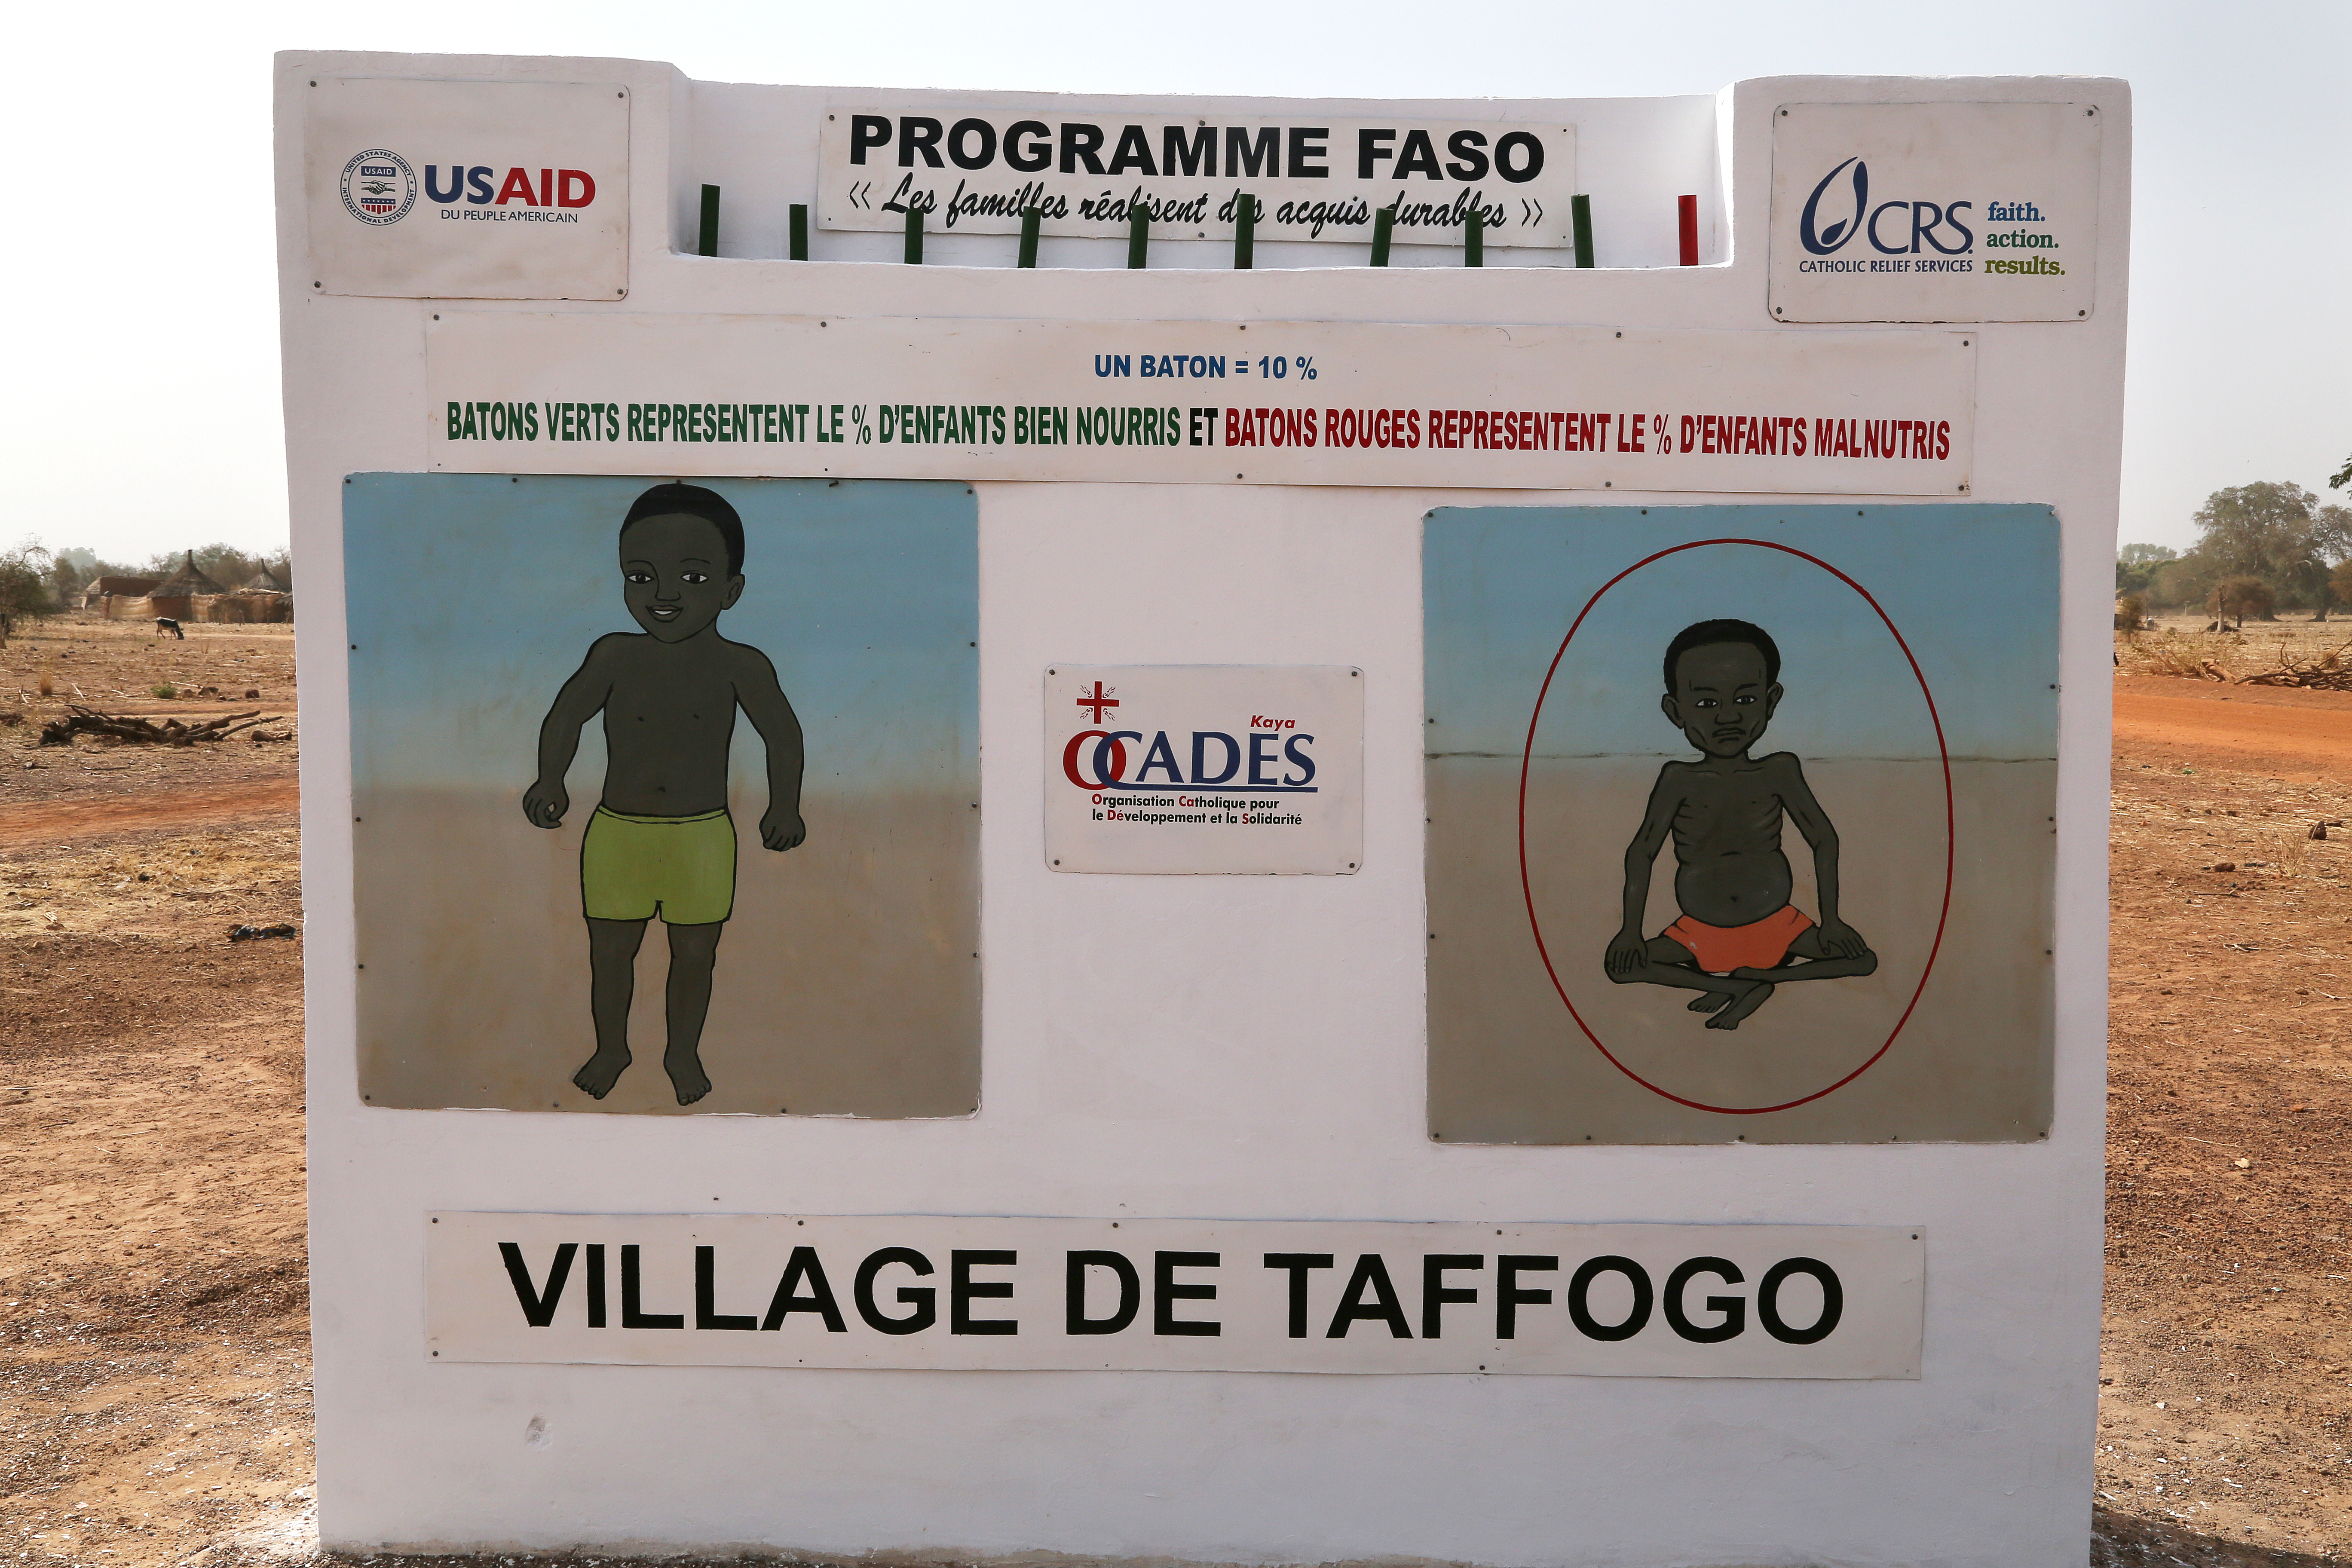 The village health committee uses a scoreboard to focus community attention on progress. Photo by Michael Stulman/CRS